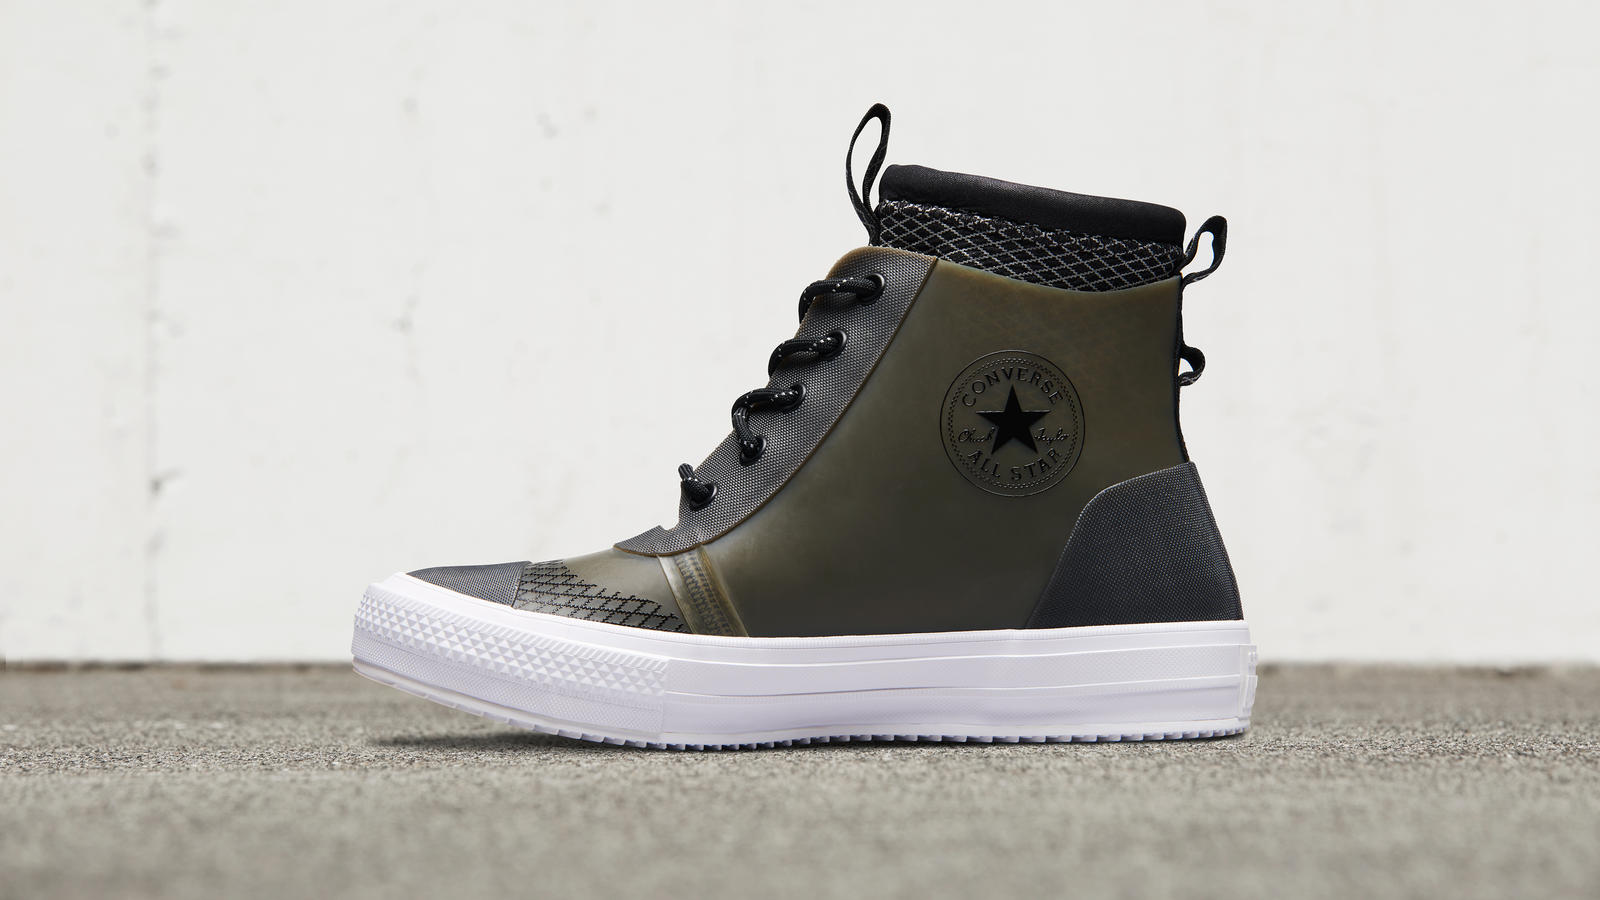 63362a706 Converse Chuck II Waterproof Thermo Boot - Nike News